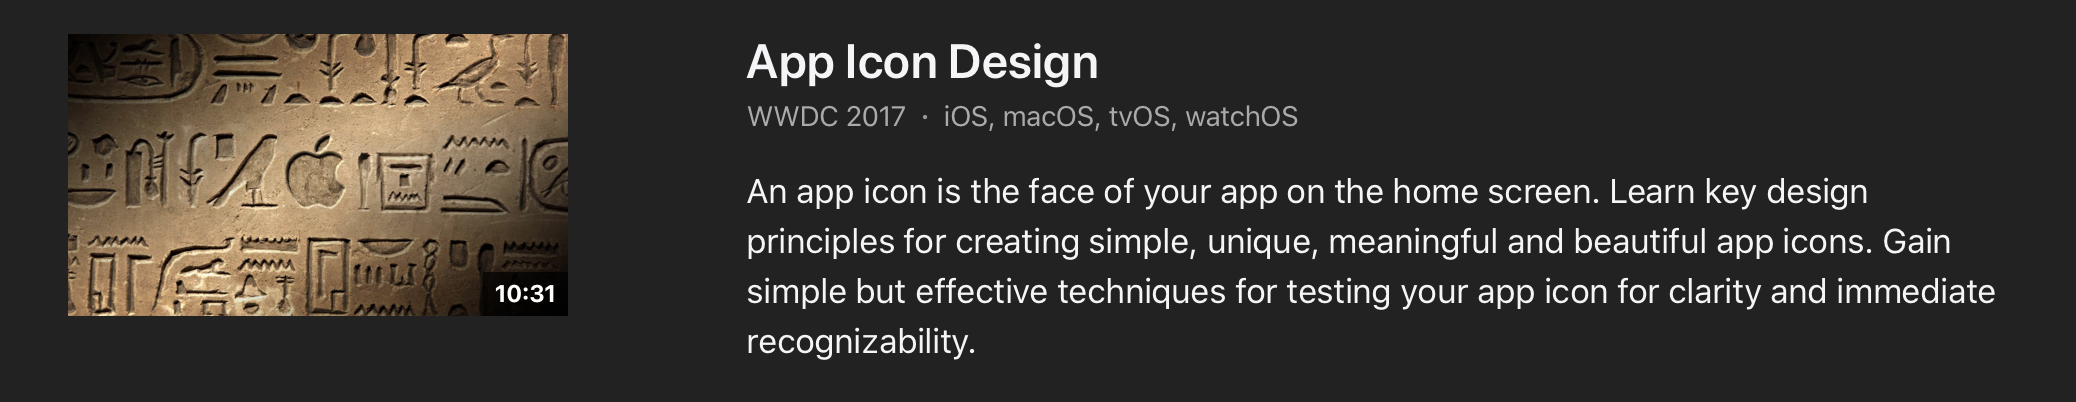 App Icon Design.png